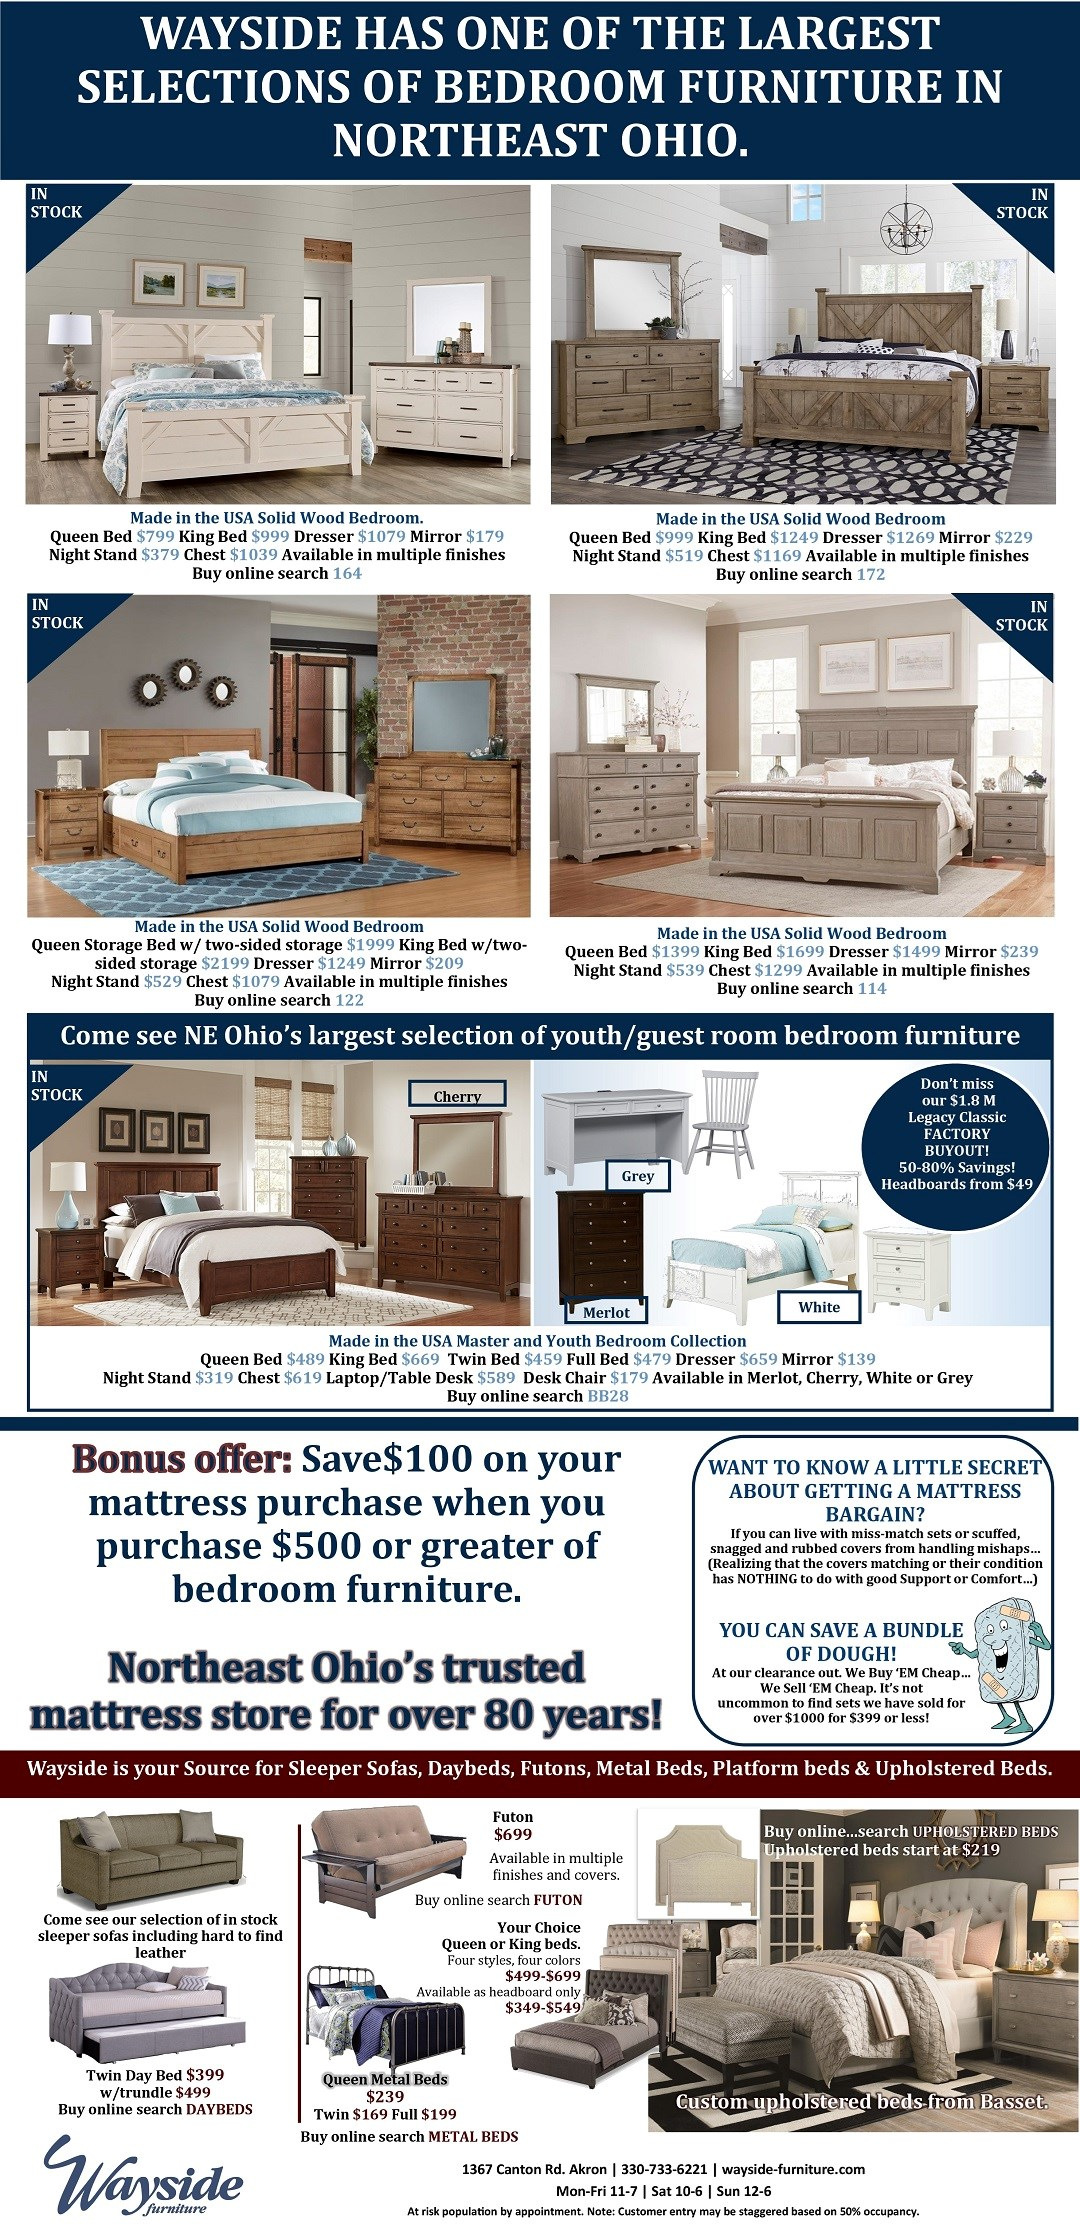 wayside has one of the largest selections of bedroom furniture in Northeast Ohio